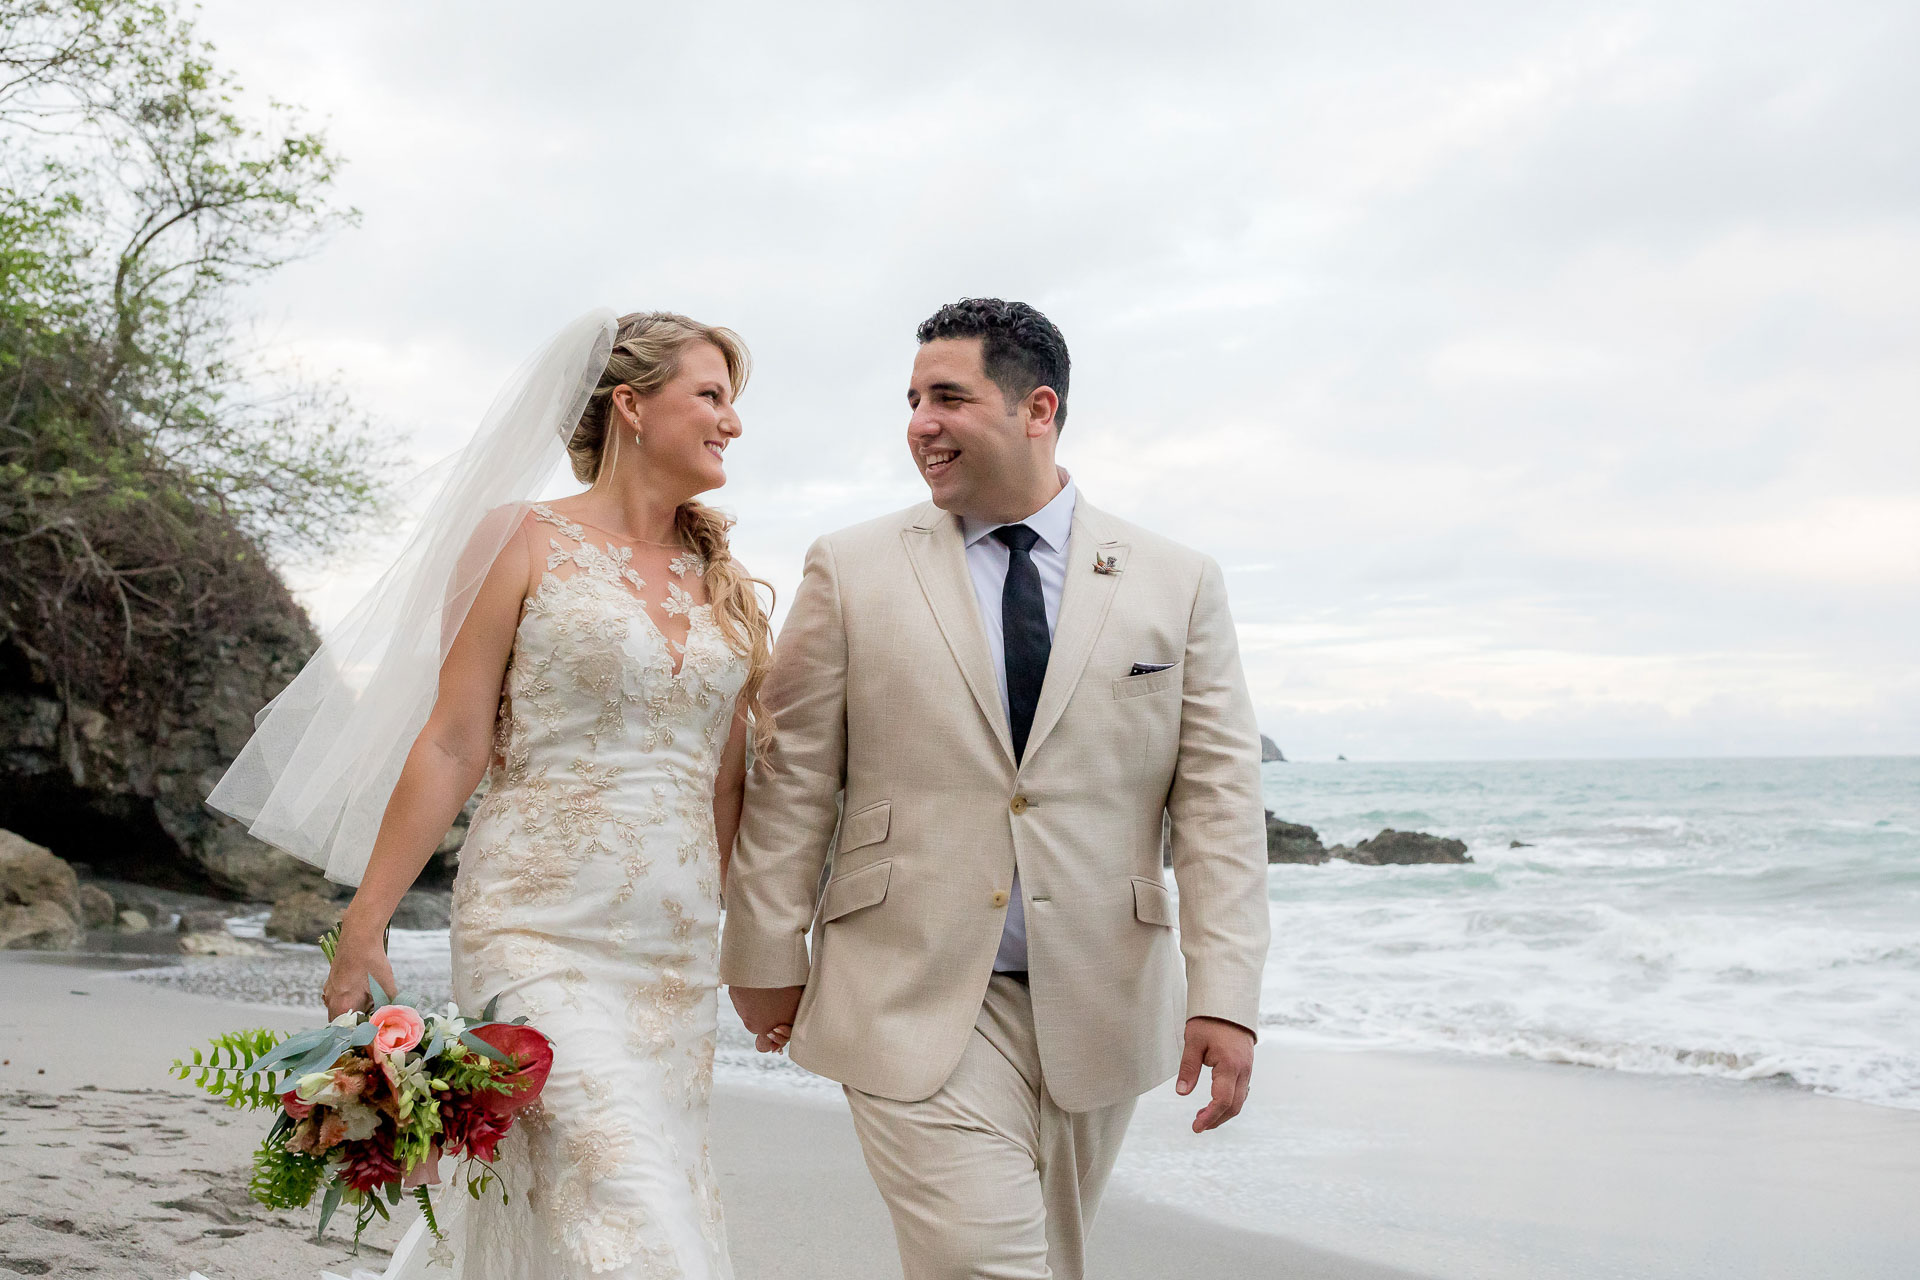 Arenas del Mar Beachfront and Rainforest Resort, Manuel Antonio, Costa Rica Elopement Image | The couple looks happily into each other's eyes as they stroll hand-in-hand